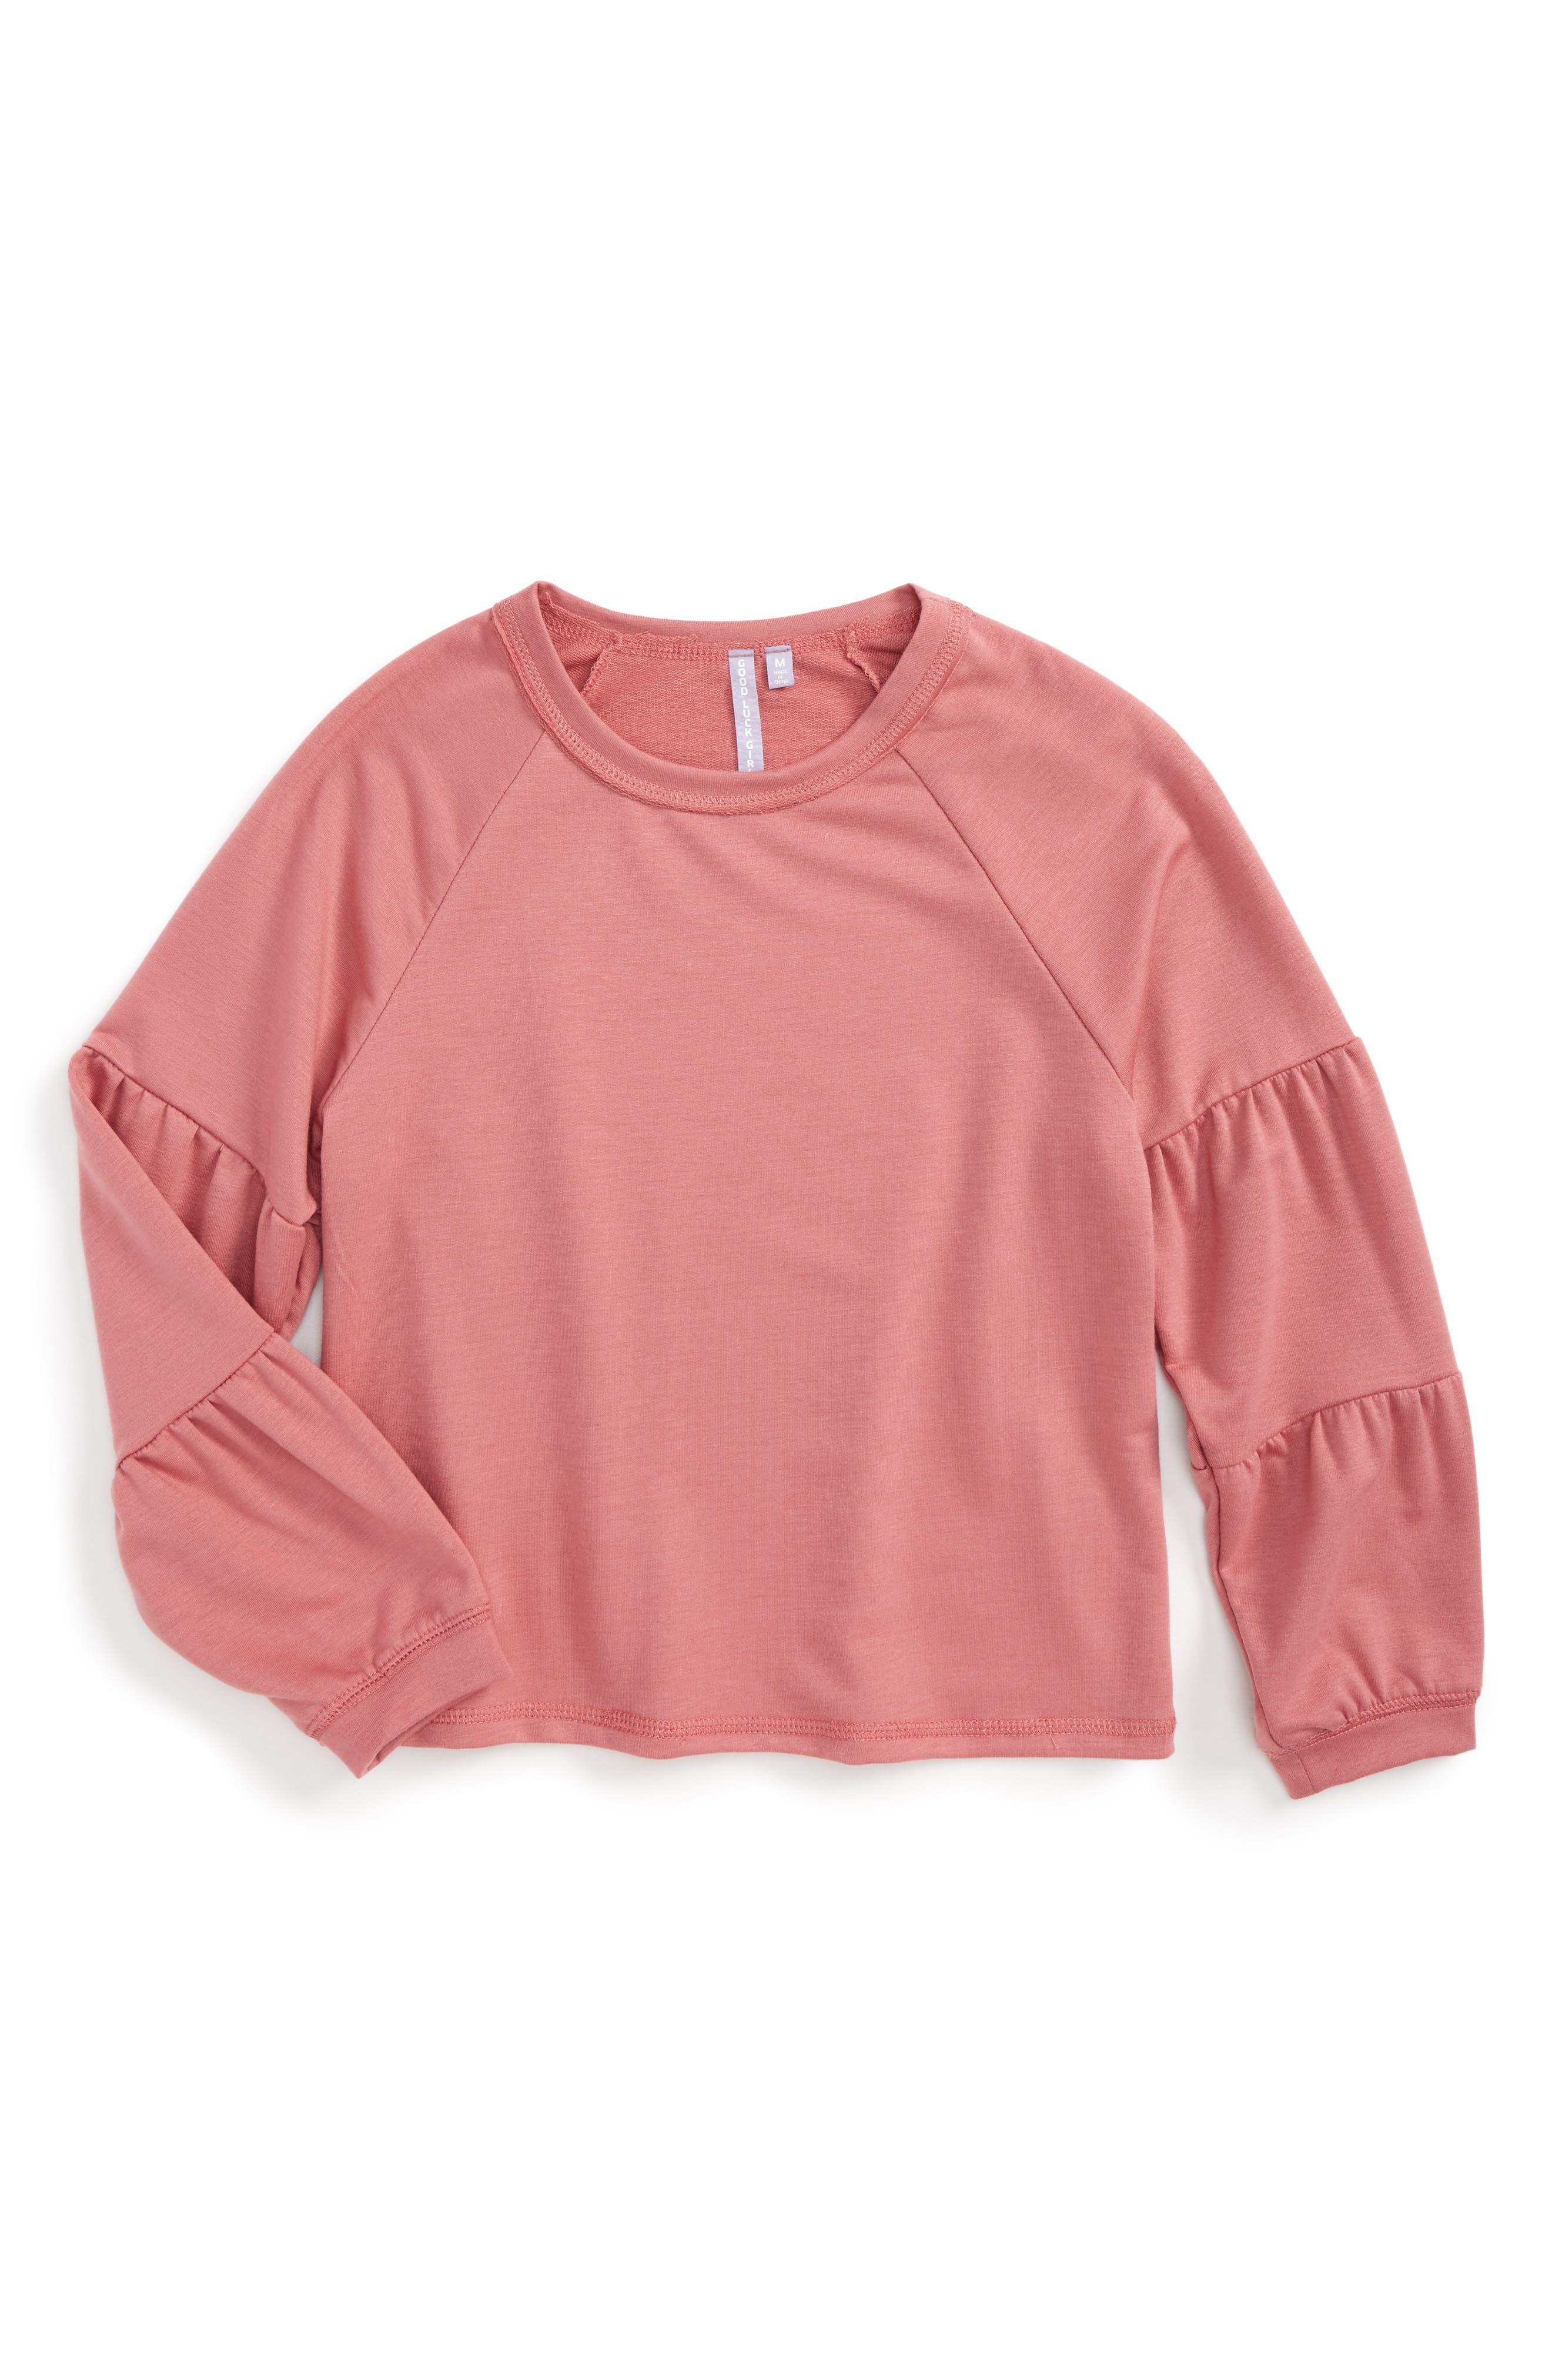 Good Luck Gem Tiered Sleeve Sweatshirt (Big Girls)